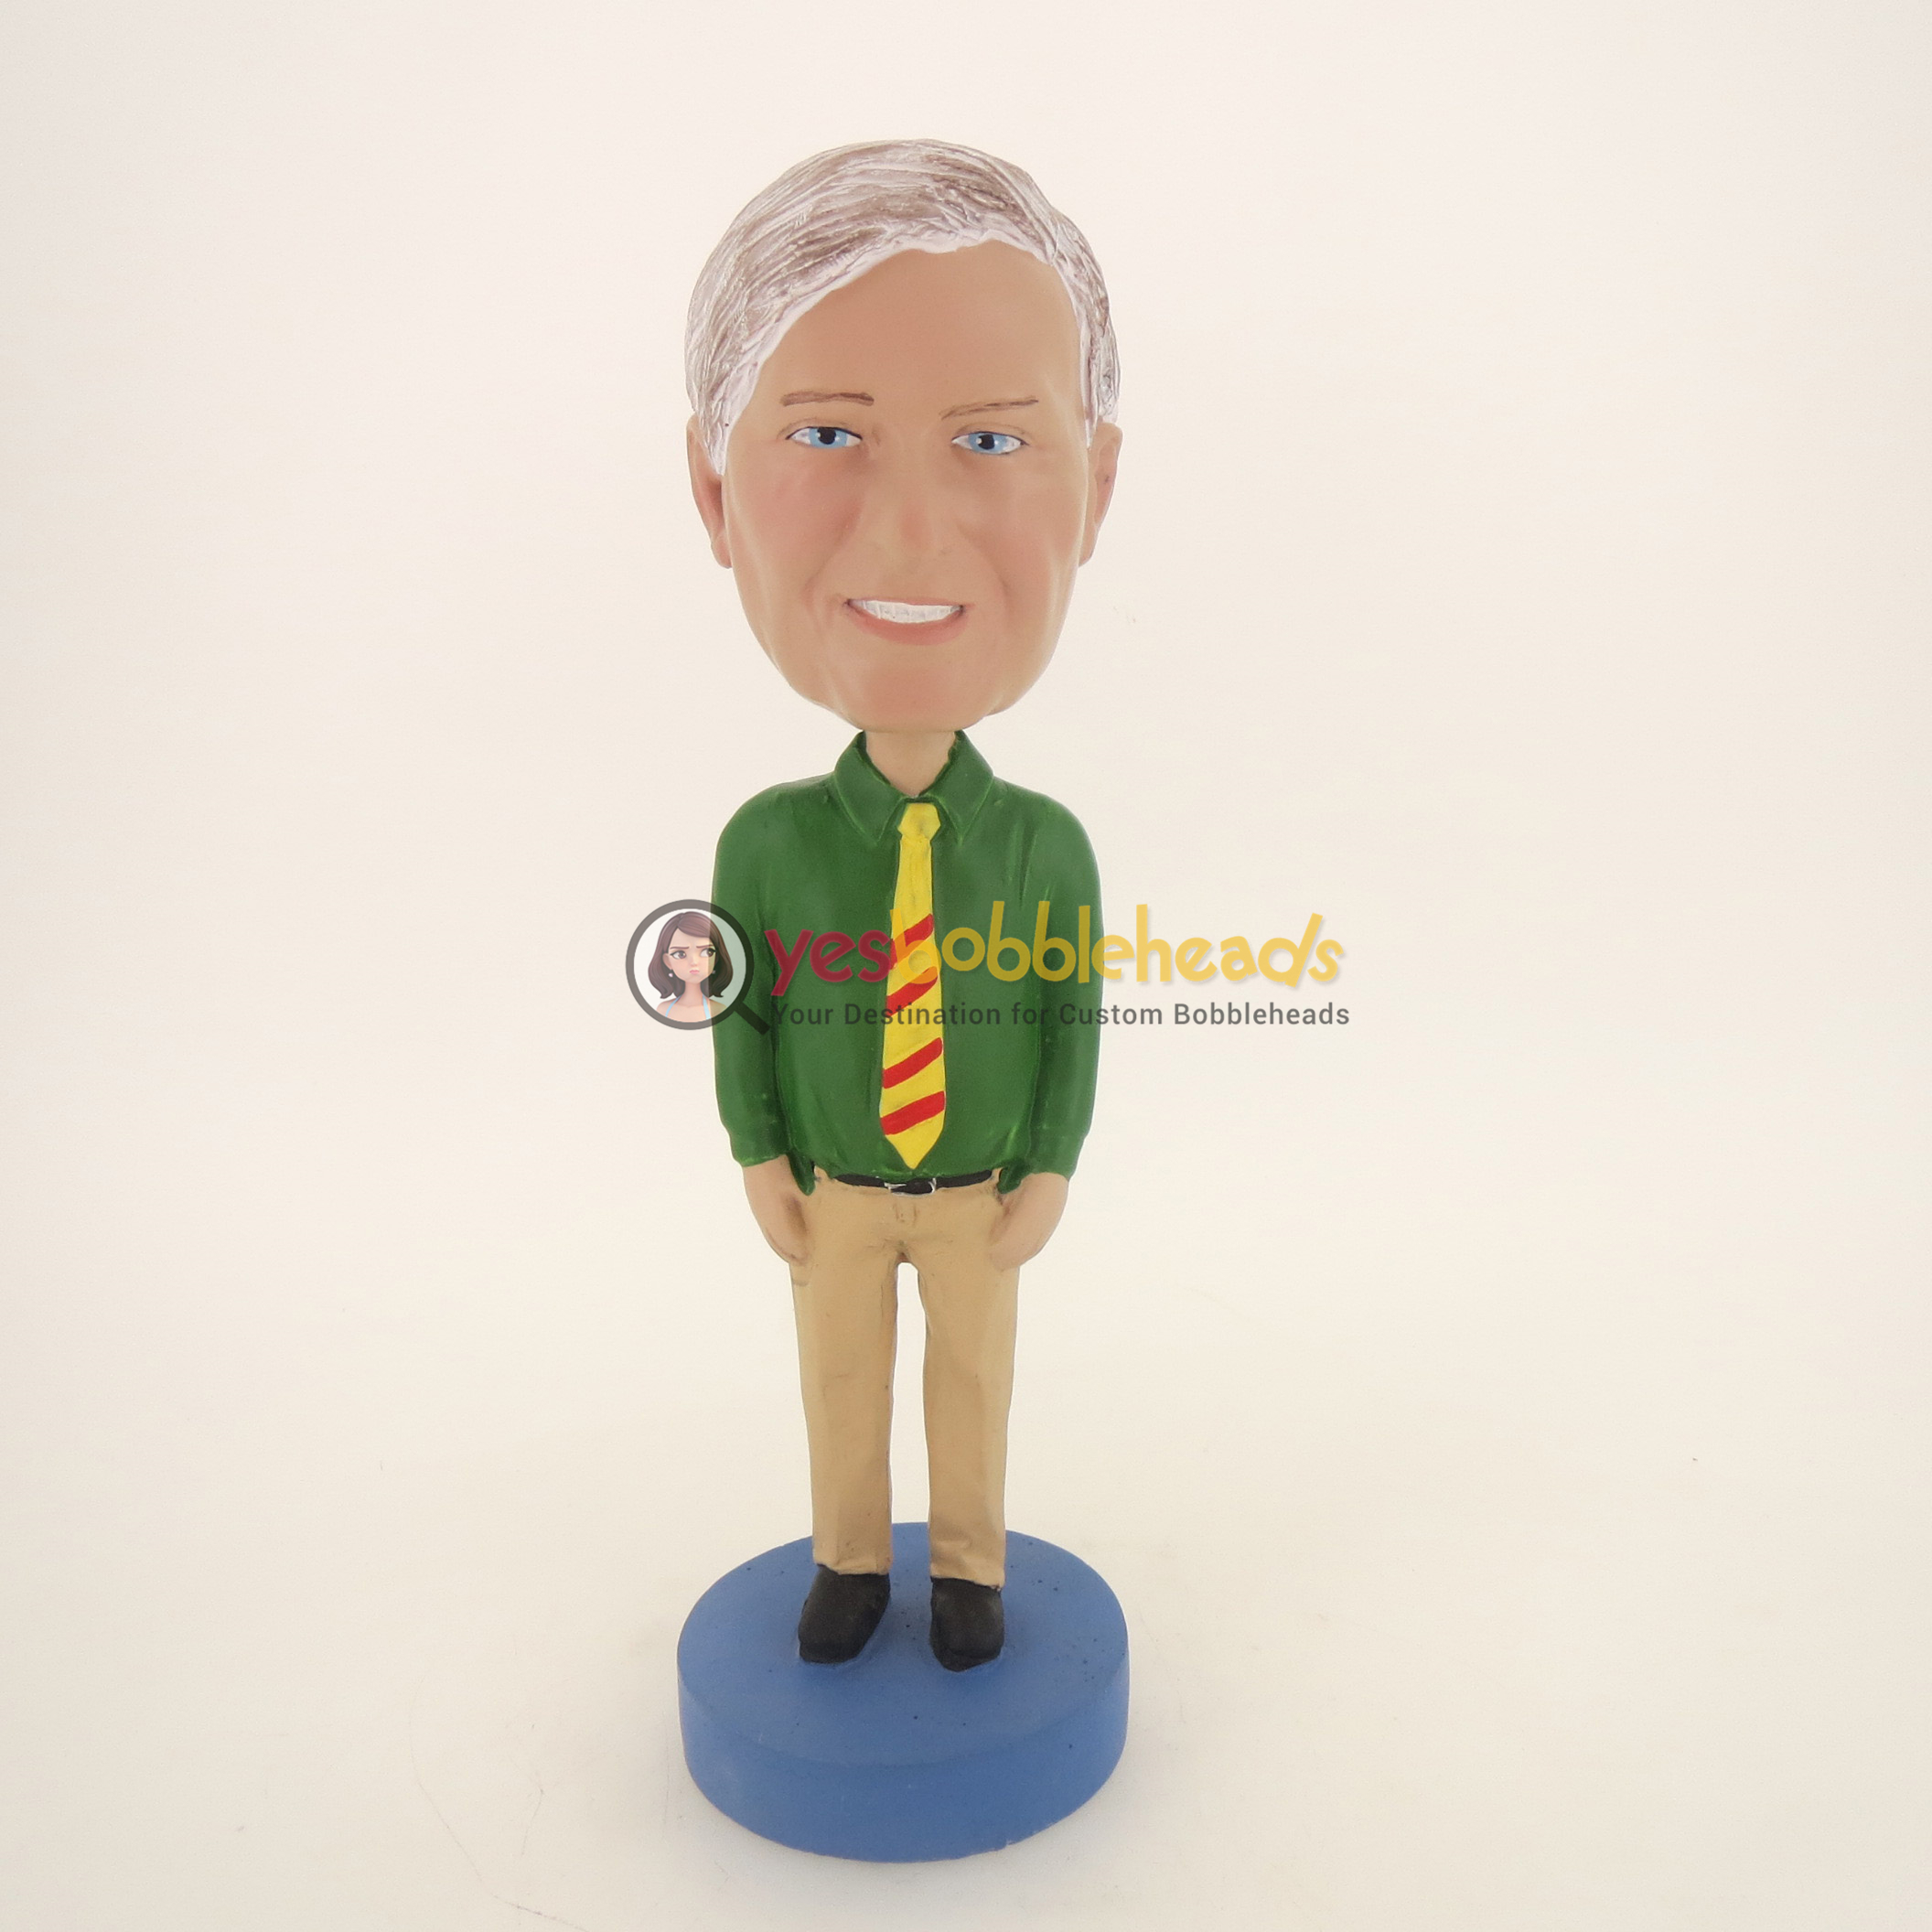 Picture of Custom Bobblehead Doll: Old Casual Man In Green With Tie